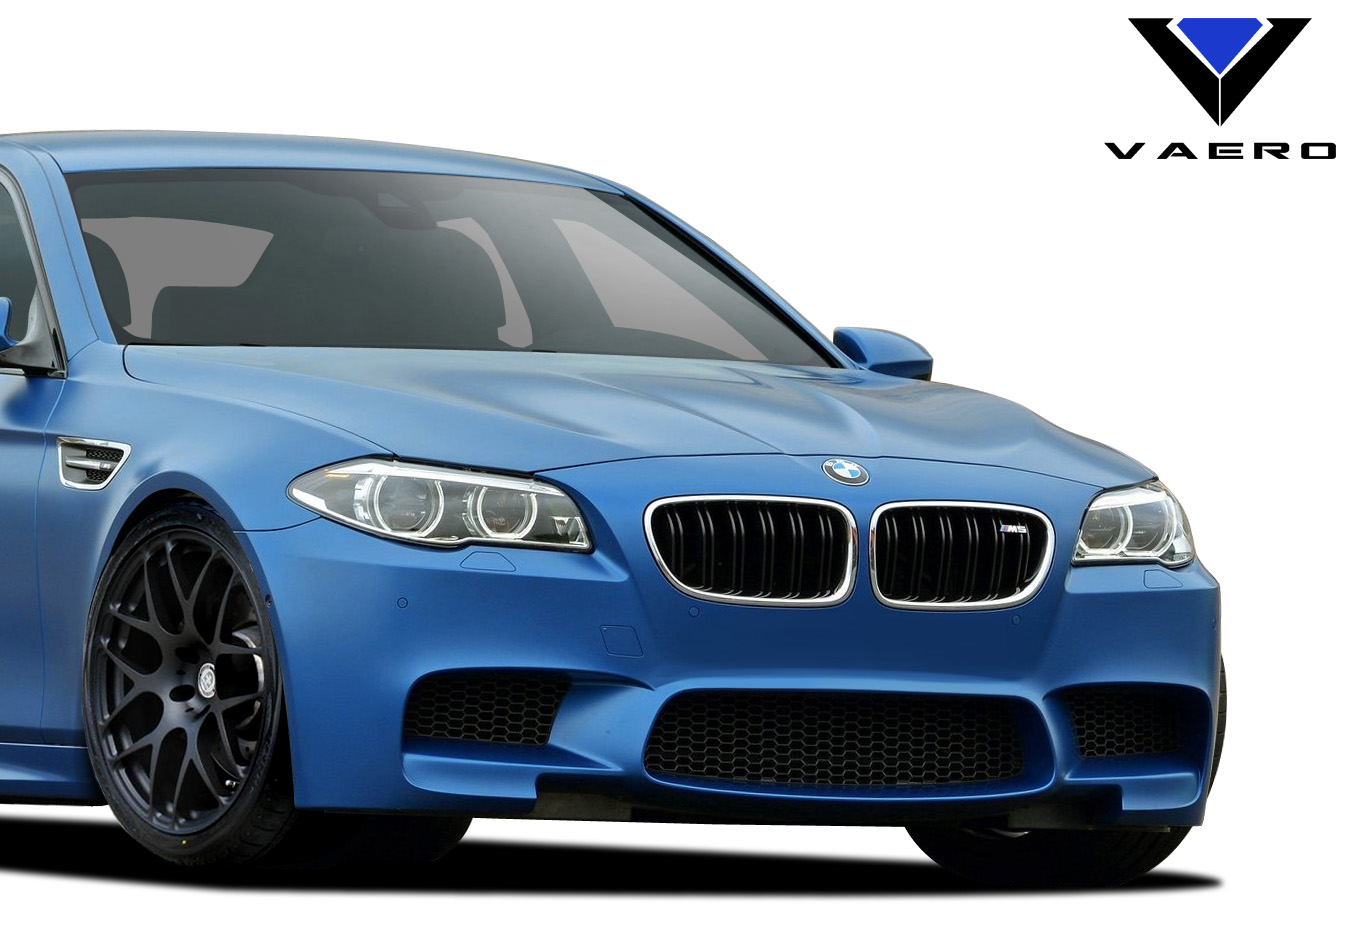 2016 BMW 5 Series ALL - Polypropylene Front Bumper Bodykit - BMW 5 Series F10 Vaero M5 Look Conversion Front Bumper Cover ( with PDC , with Washer , w